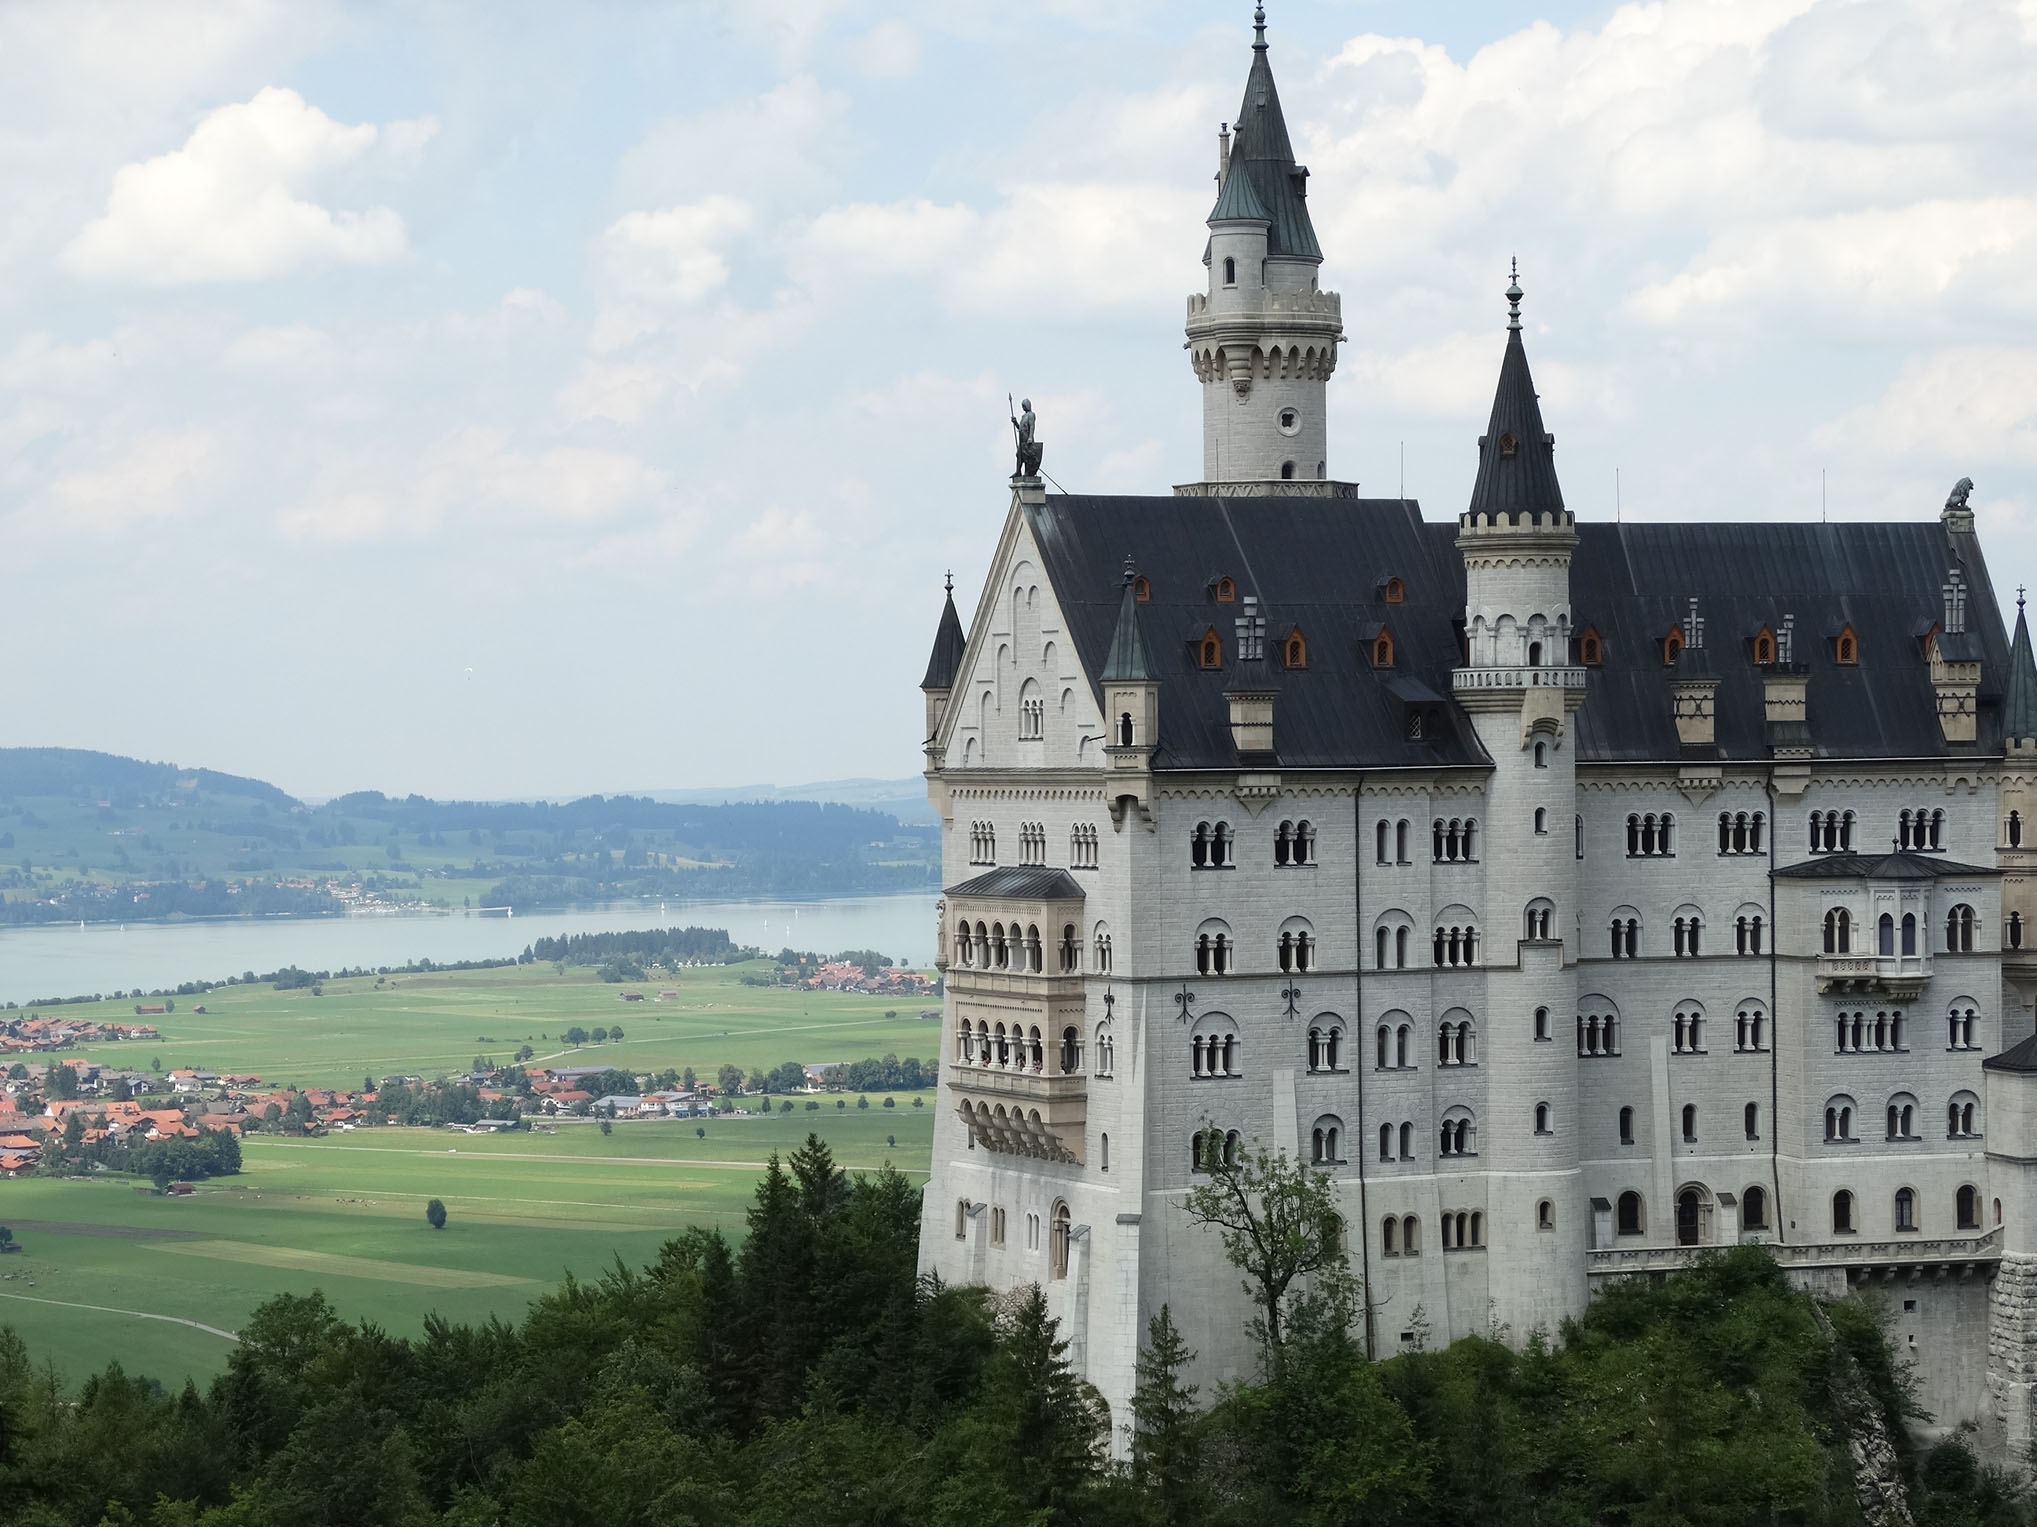 This fairytale look of the Neuschwanstein castle inspired Walt Disney to create the Magic Kingdom. Today, Neuschwanstein is the most visited castle in Germany, and one of the most popular tourist destination in the world. Every year over 1.300.000 people crosses its gate.